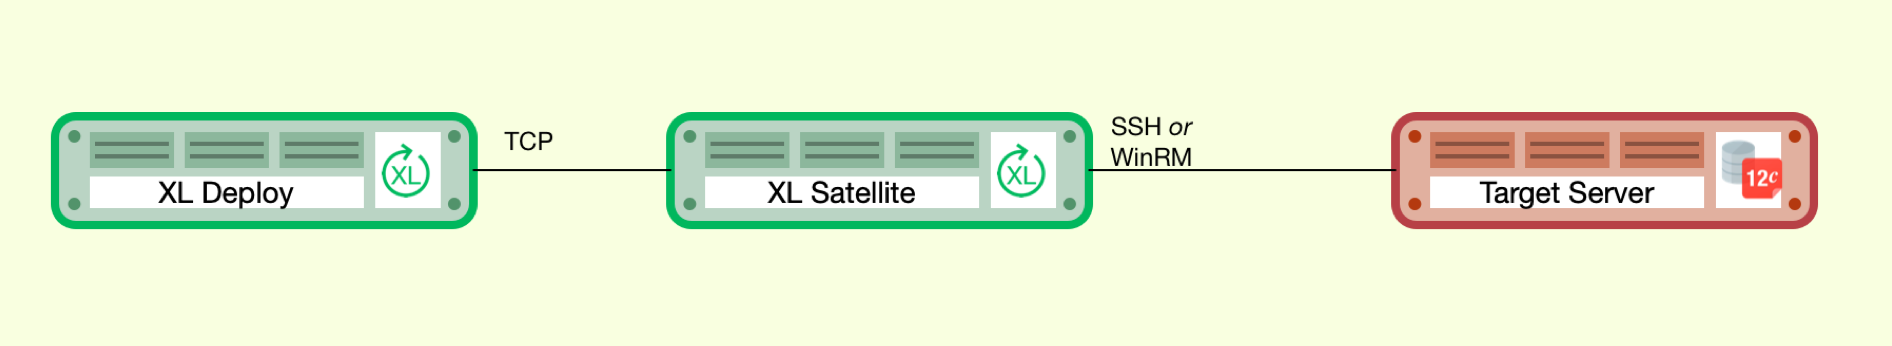 XL Deploy, first moves workload to XL Satellite through TCP, then SSH or WinRM to target server